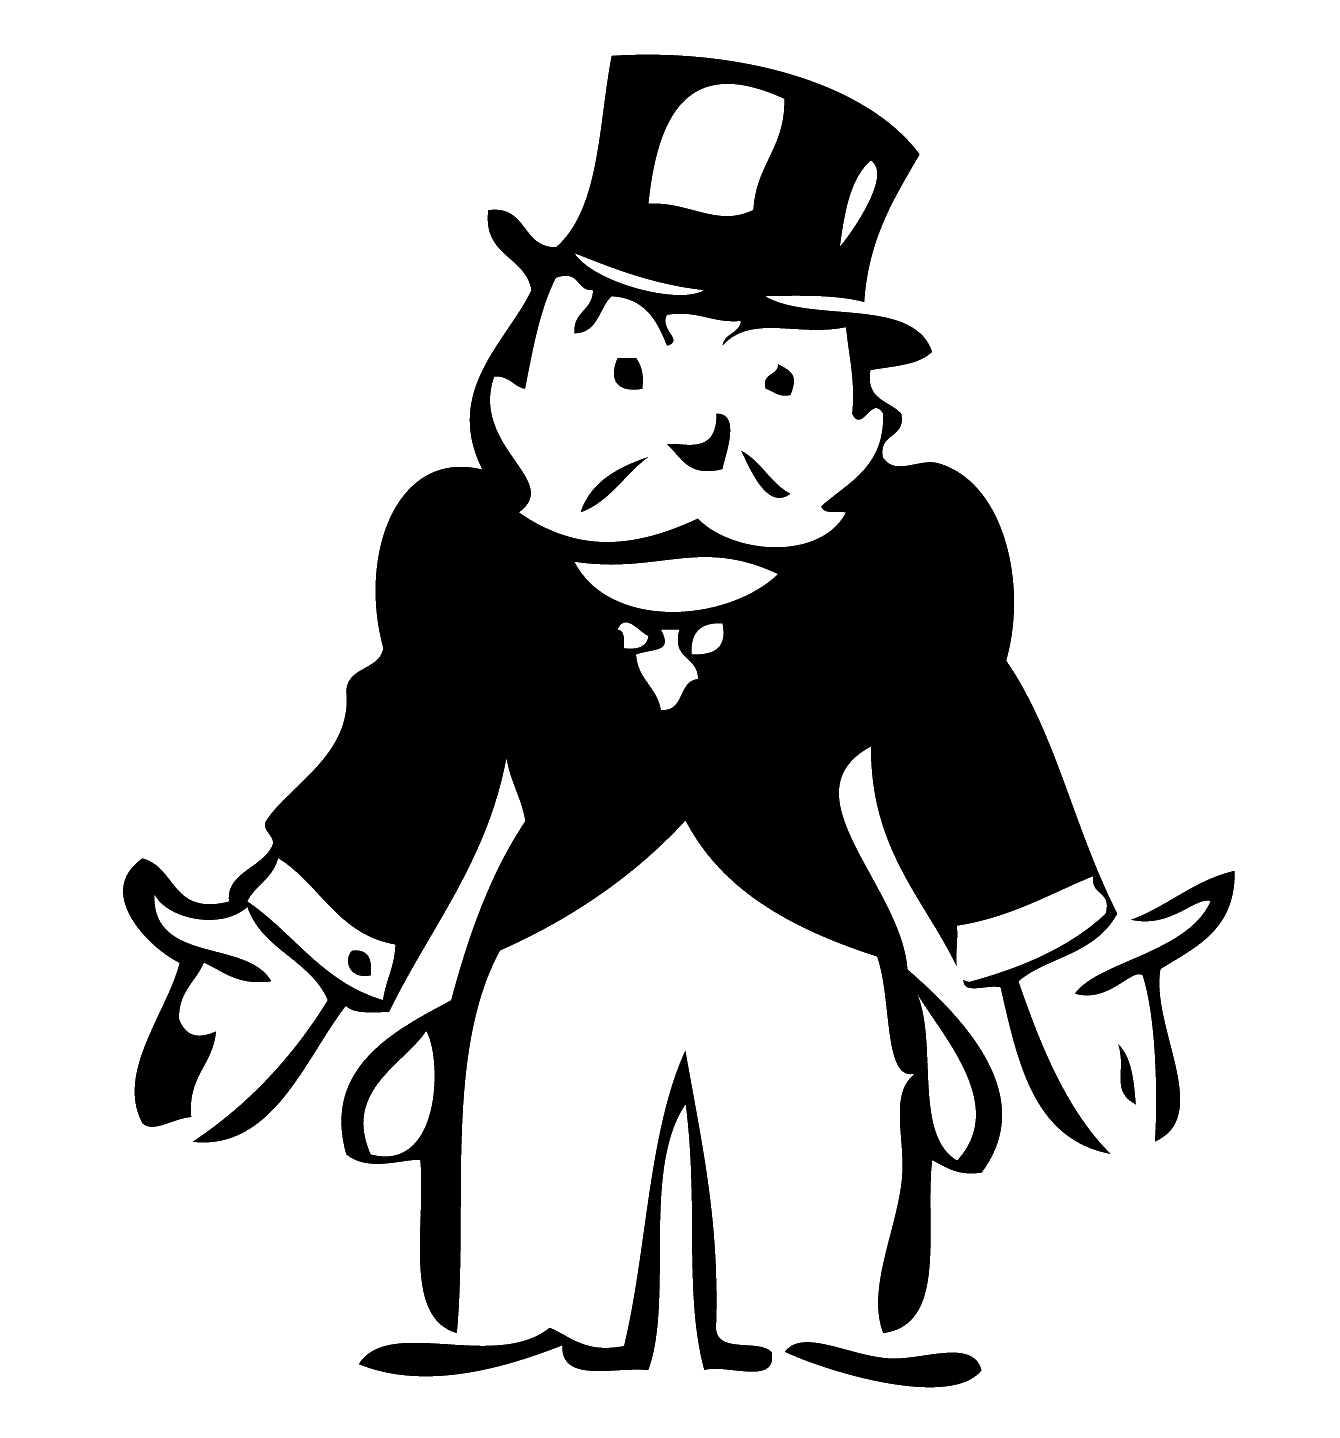 Money rich politician cartoon clipart clip freeuse download Living Stingy: Fight Wealth Inequality - Stop Giving Money to the Rich! clip freeuse download